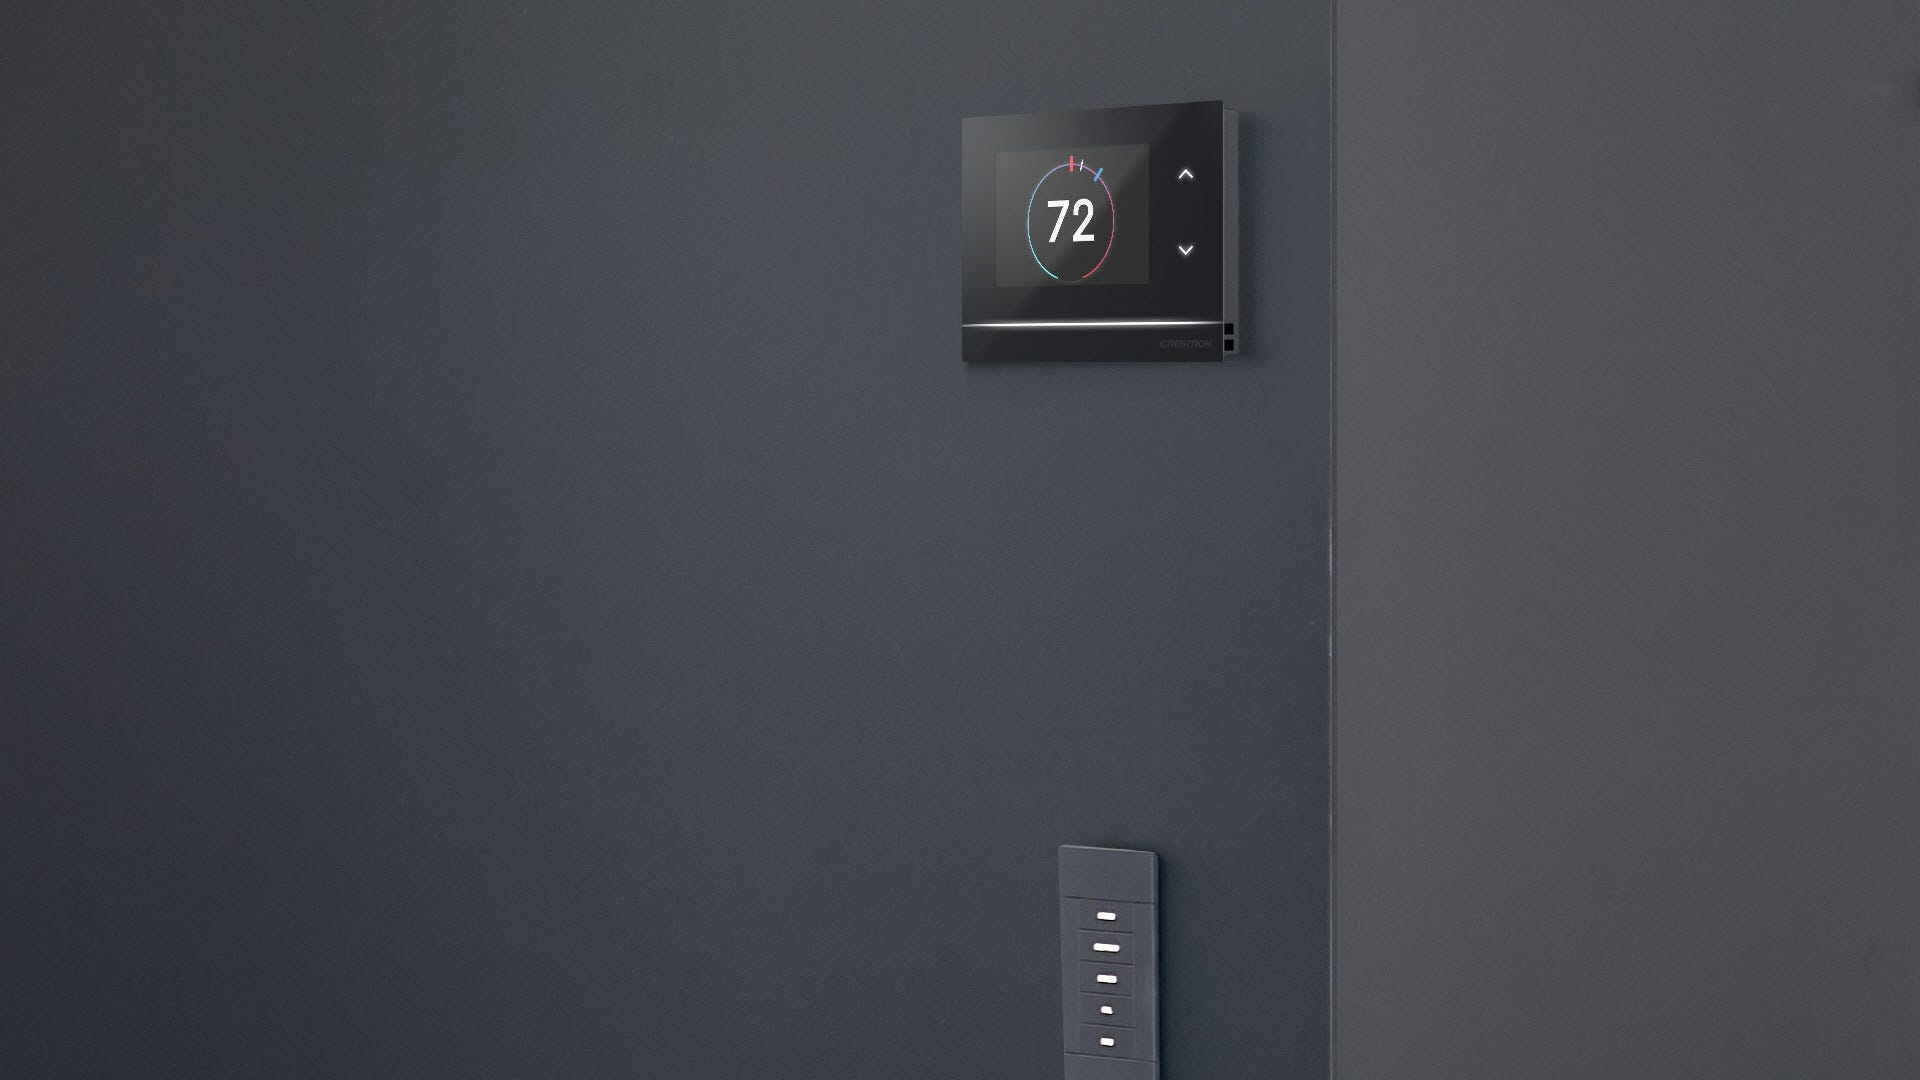 A Crestron Thermostat above a light switch